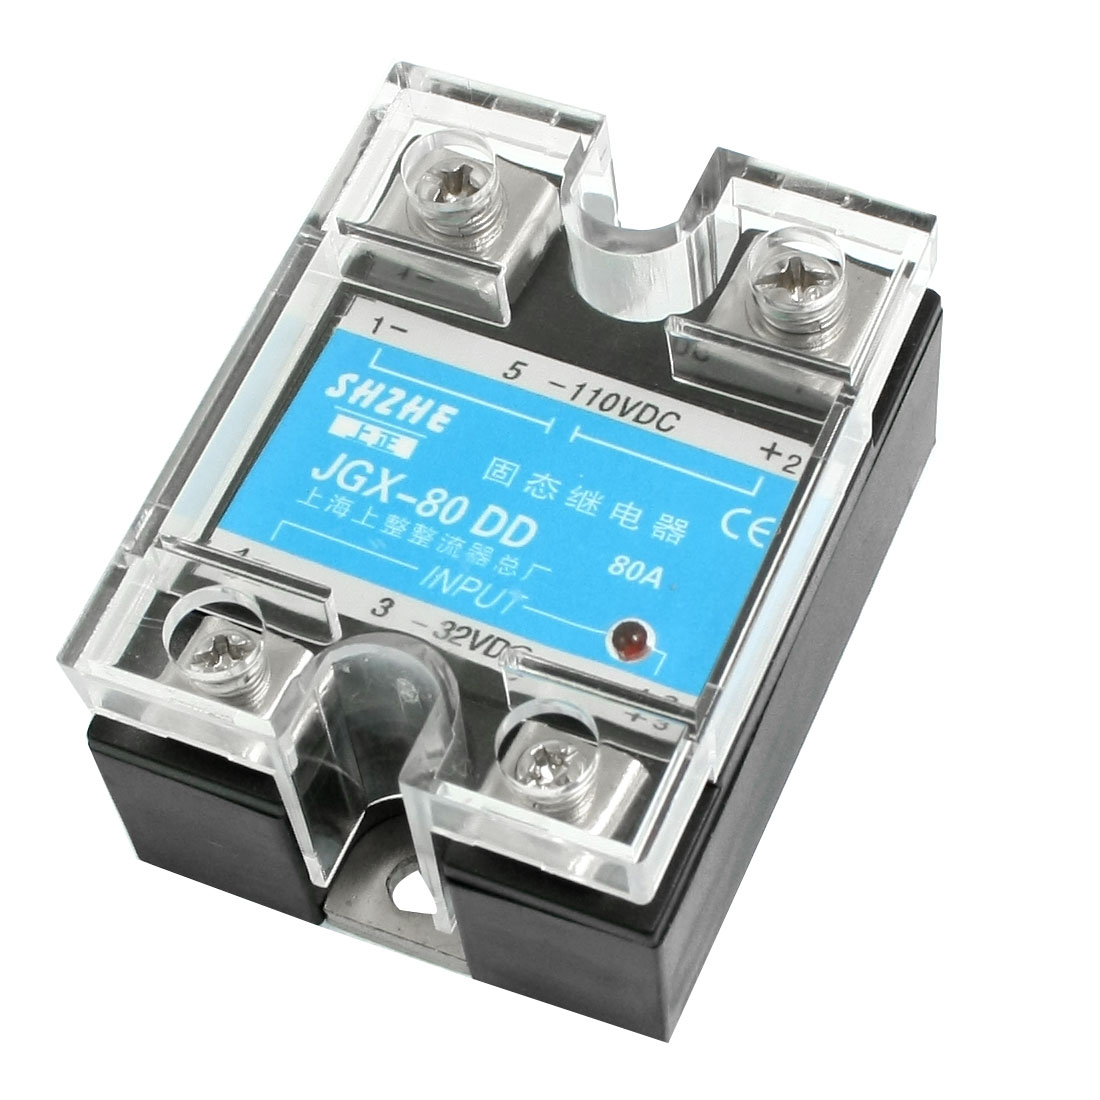 JGX-80DD DC to DC Covered Solid State Module Relay DC 3-32V DC 5-110V